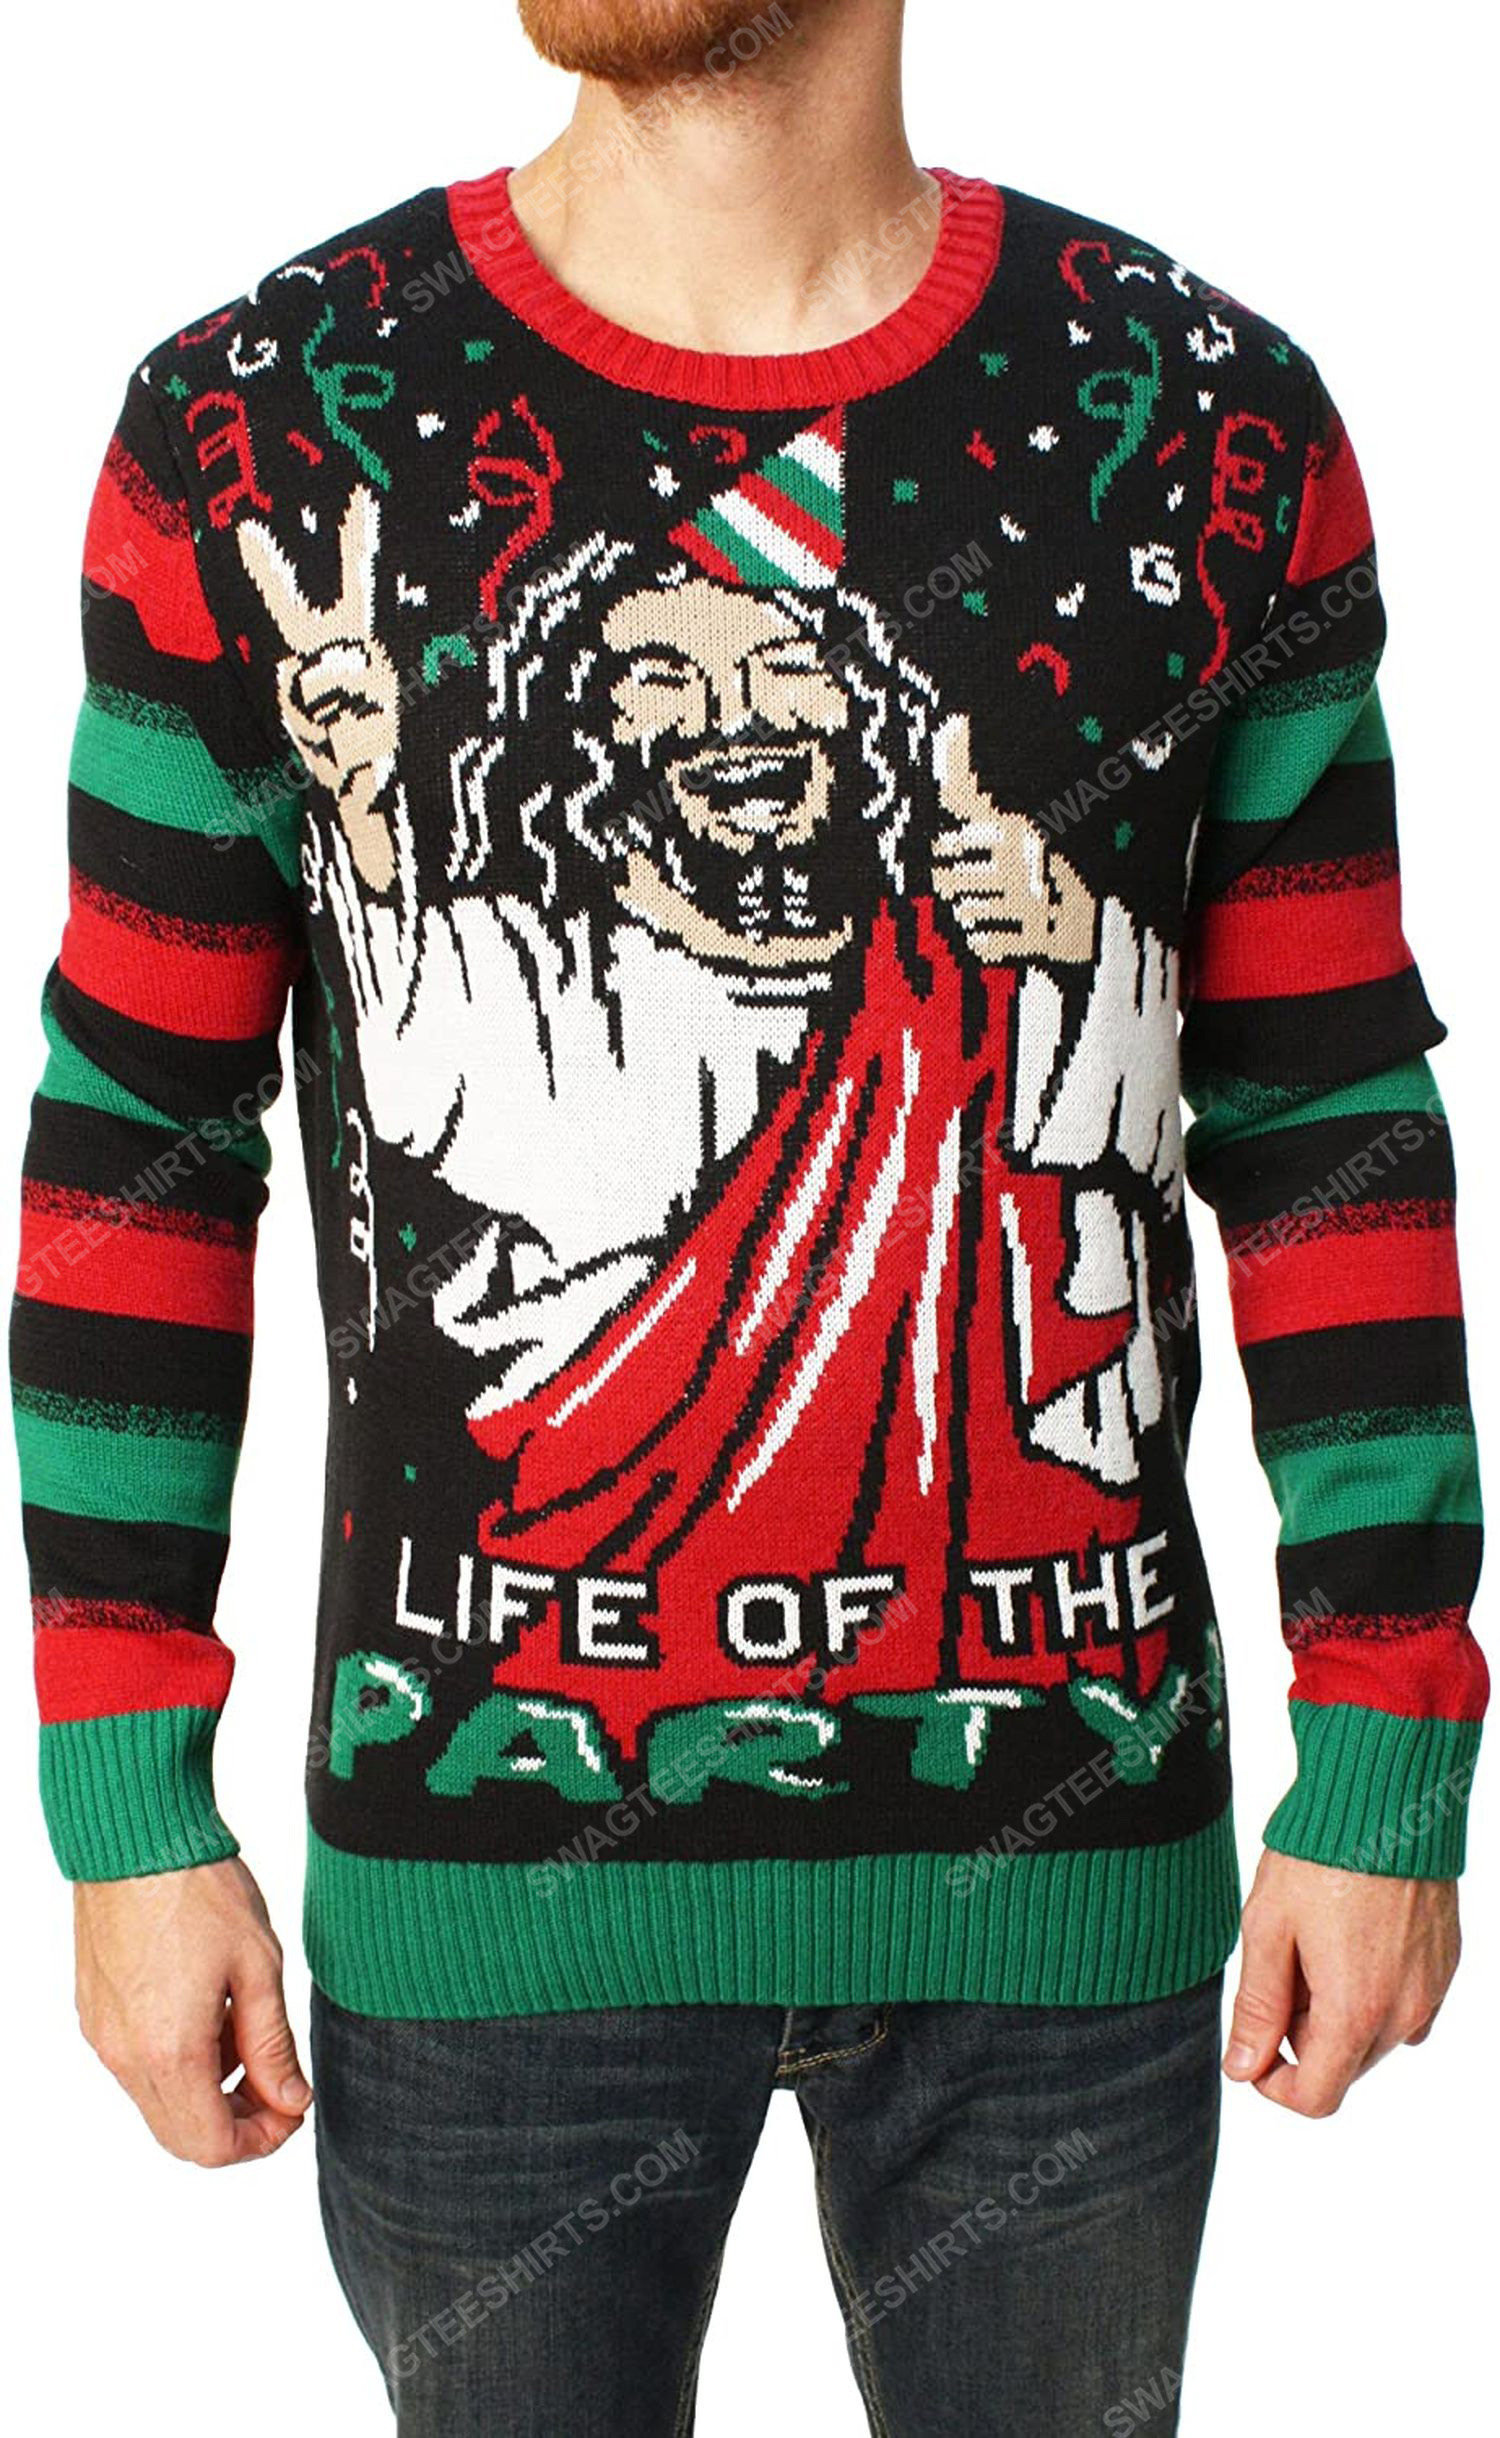 Life of the party full print ugly christmas sweater 1 - Copy (2)